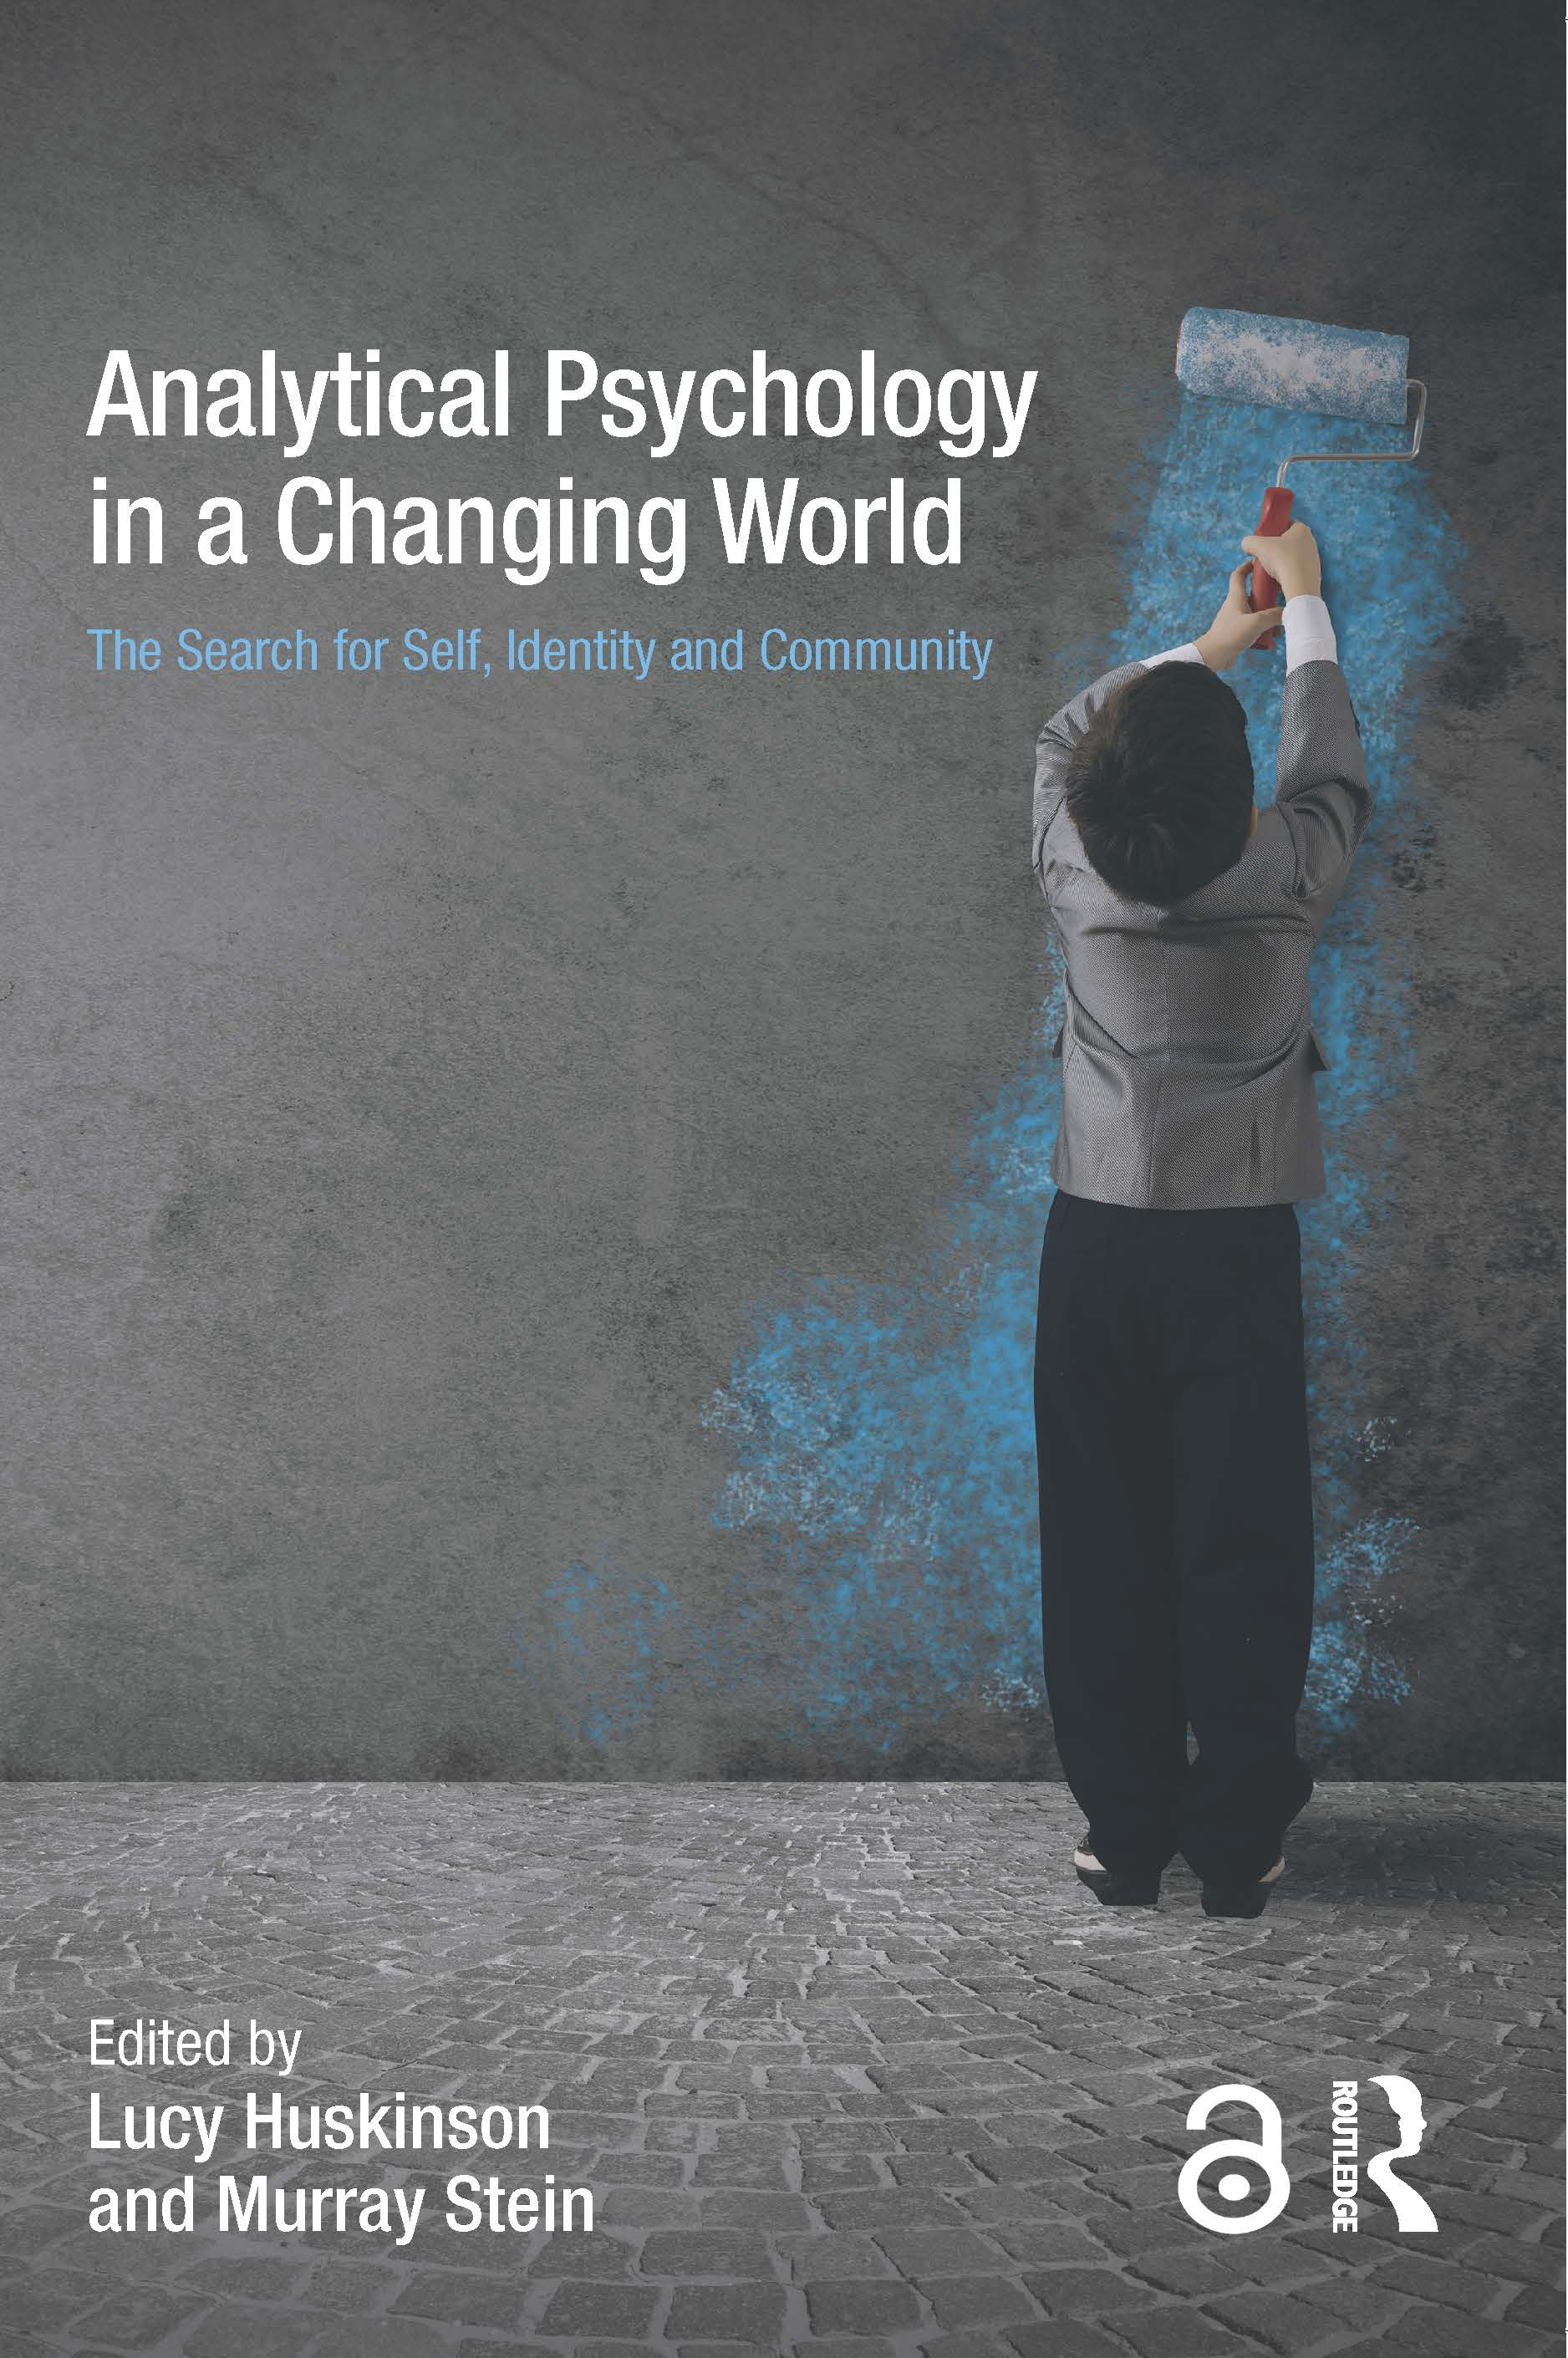 Analytical Psychology in a Changing World: The search for self, identity and community